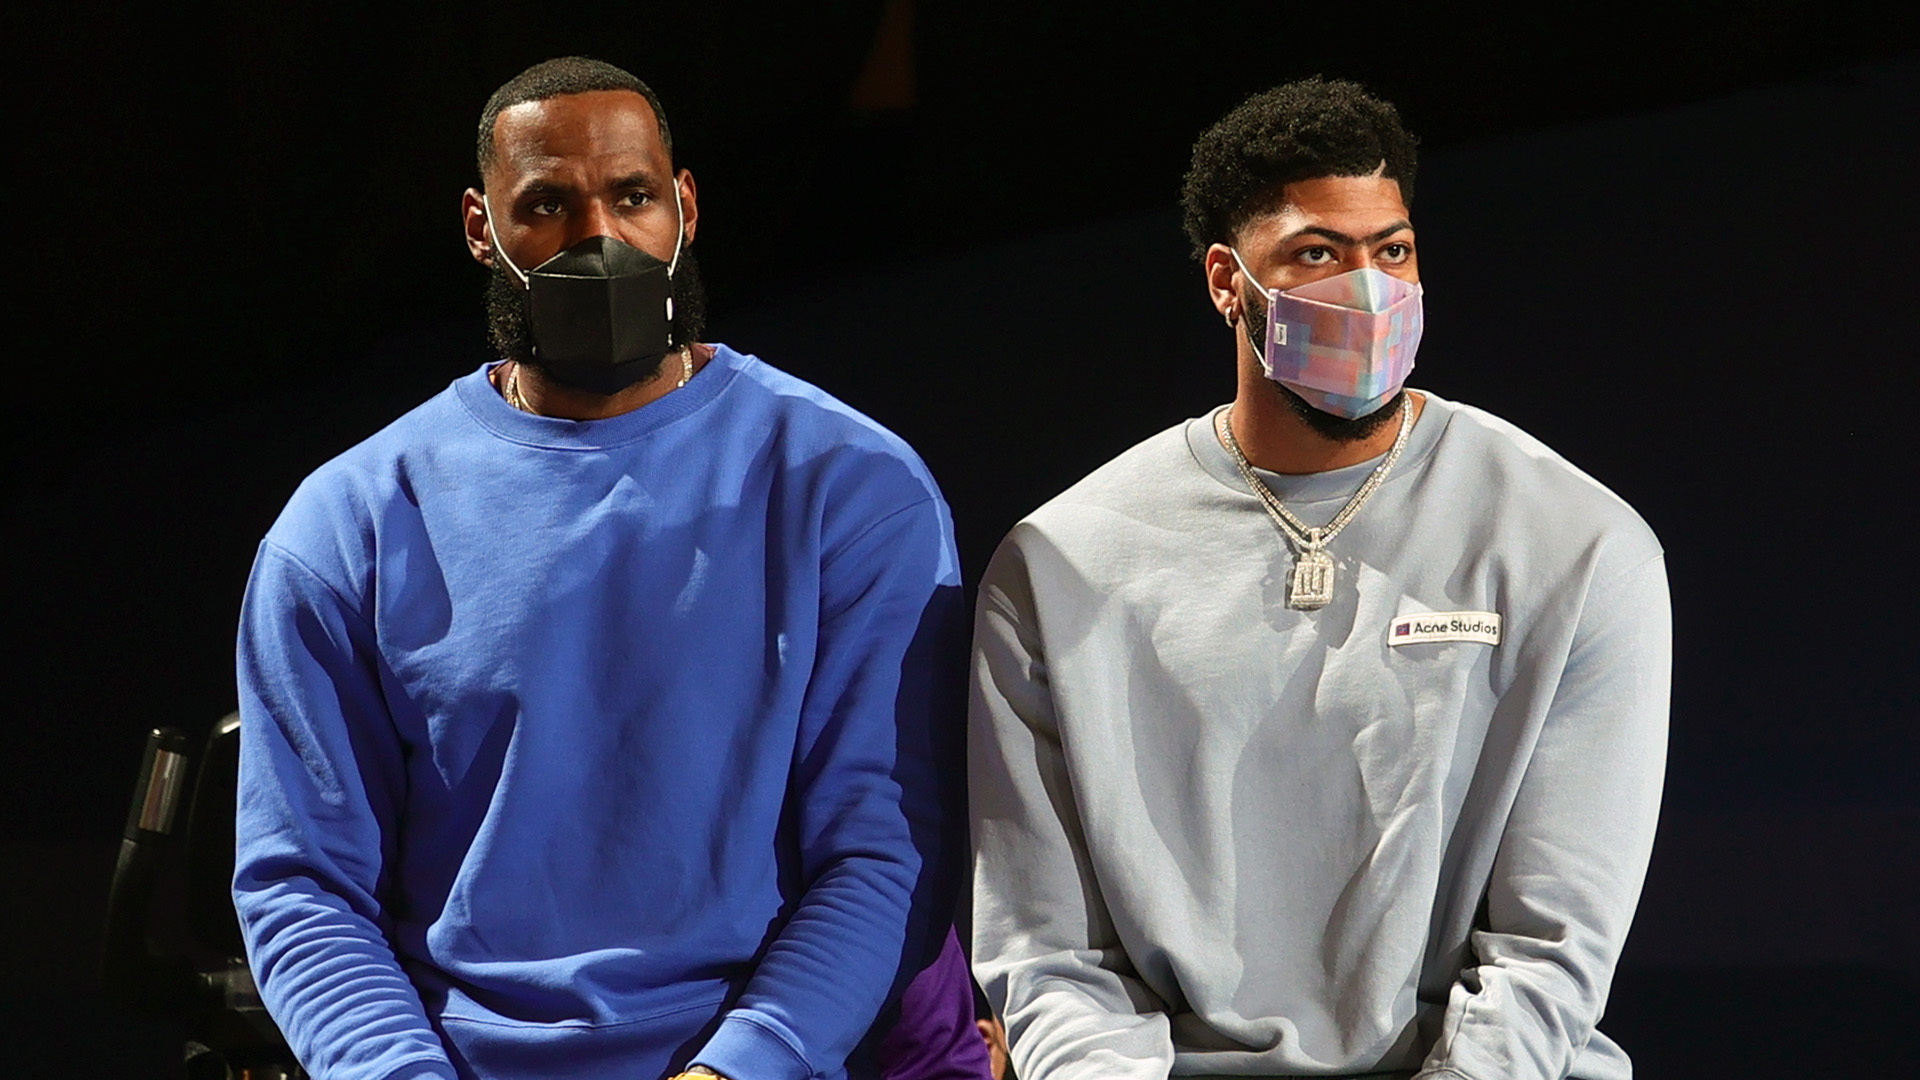 Blogtable: Should Lakers fans be concerned while LeBron, Davis are out?